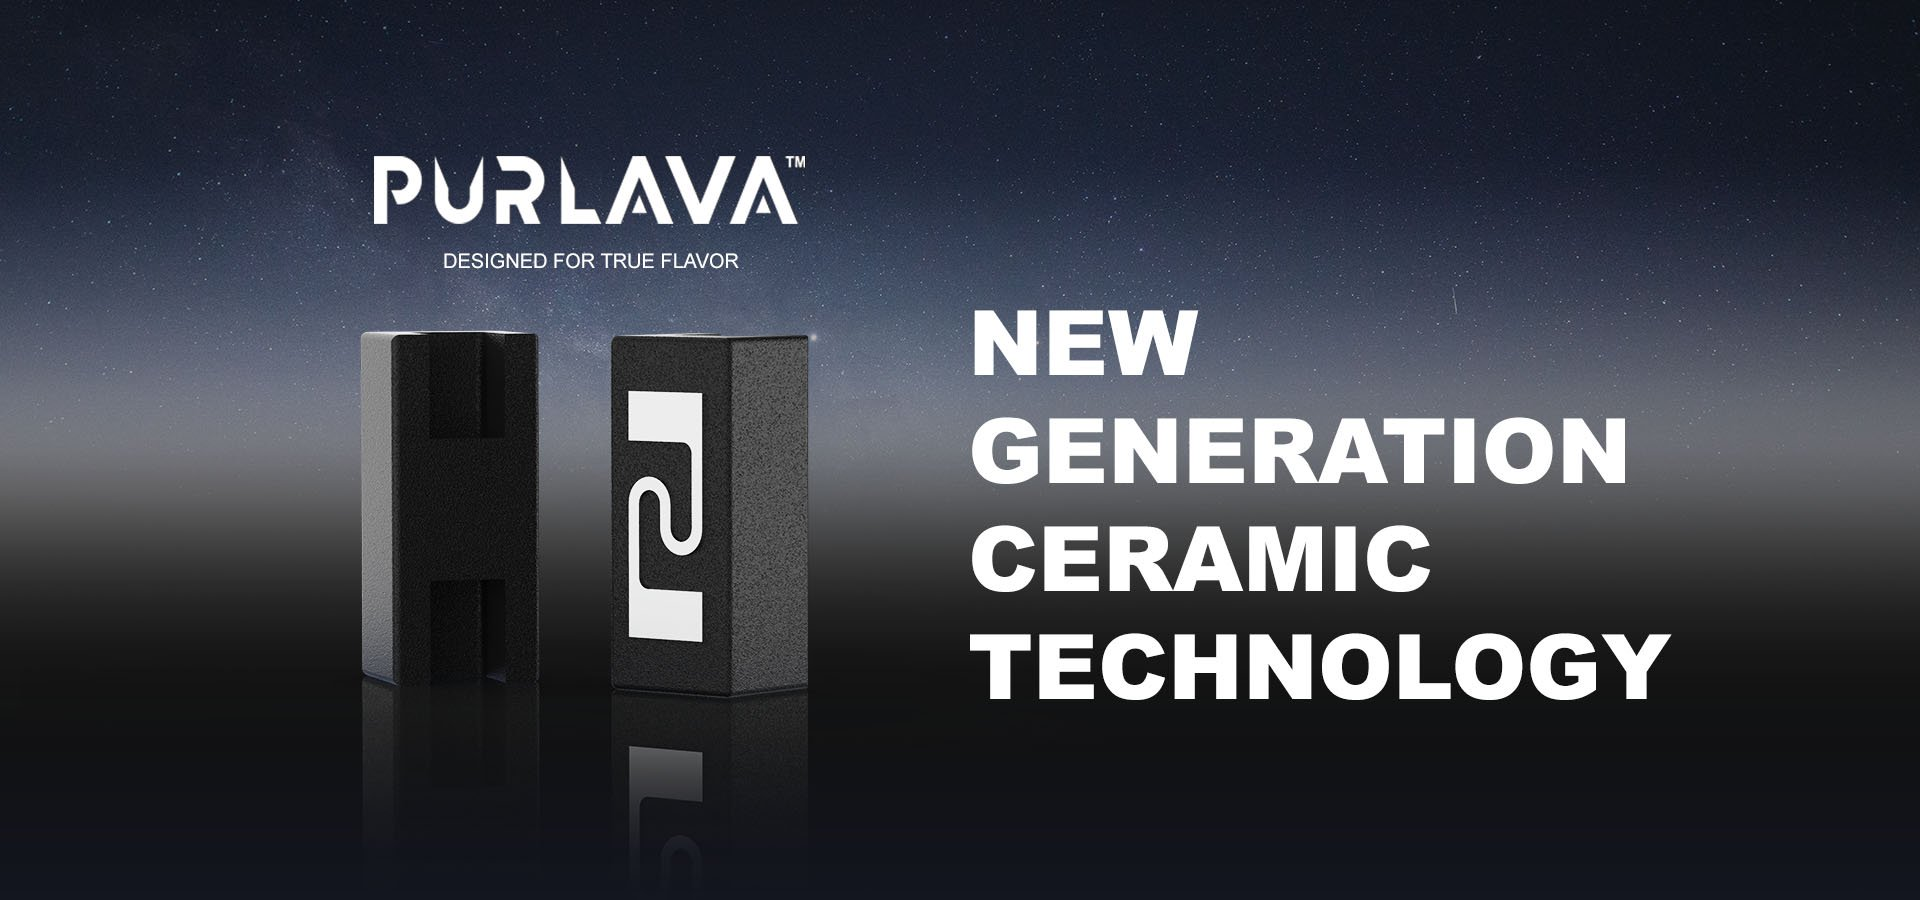 purlava,new generation creamic technology,creamic tech